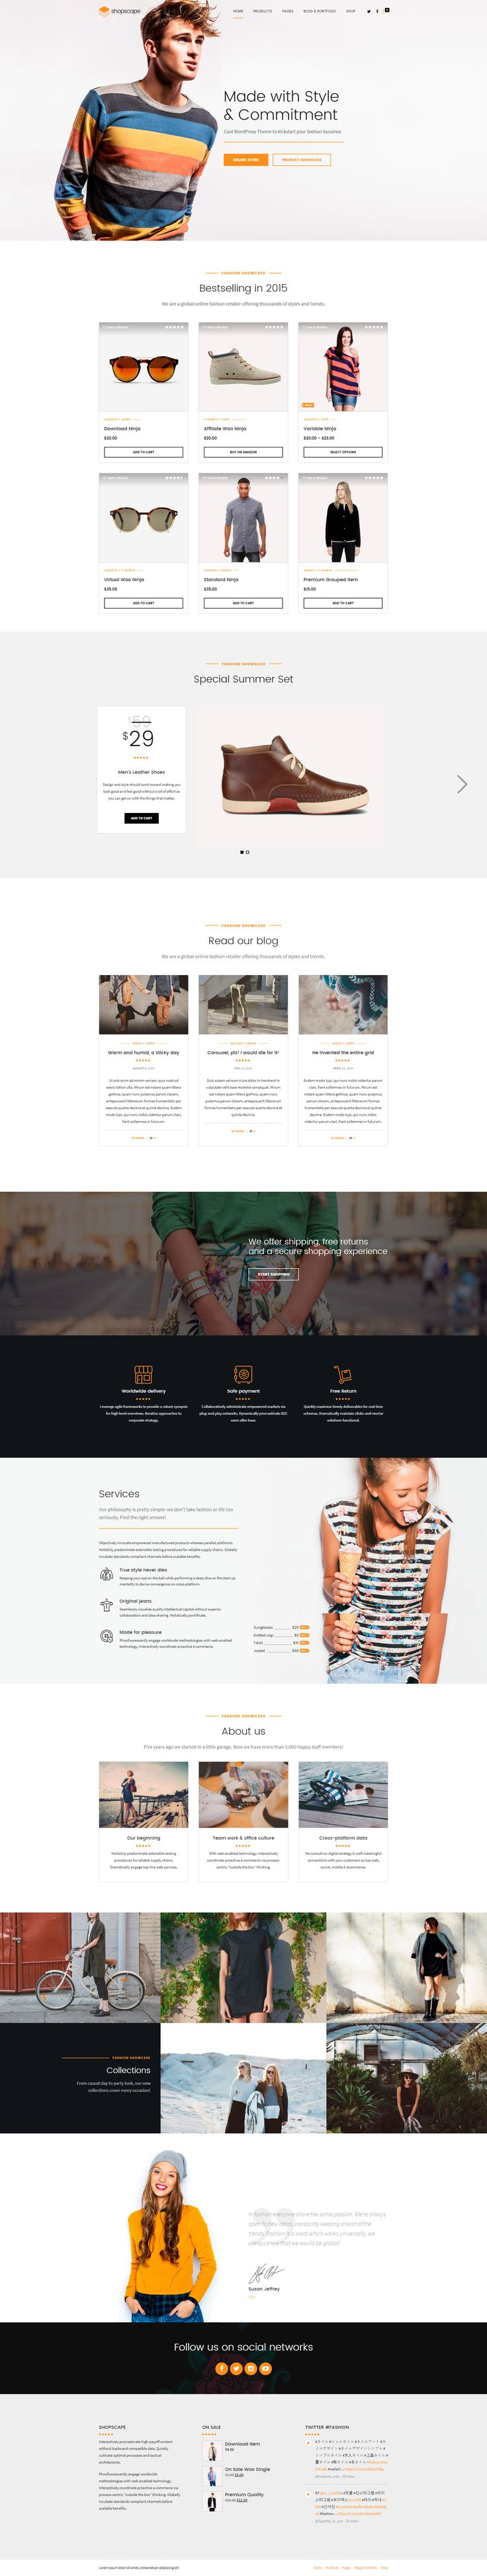 Shopscape is a #WordPress #Theme exclusively built for single product, shop, store and eCommerce websites. It is fully Responsive, Retina Ready and Easy to customize. #website #design #template